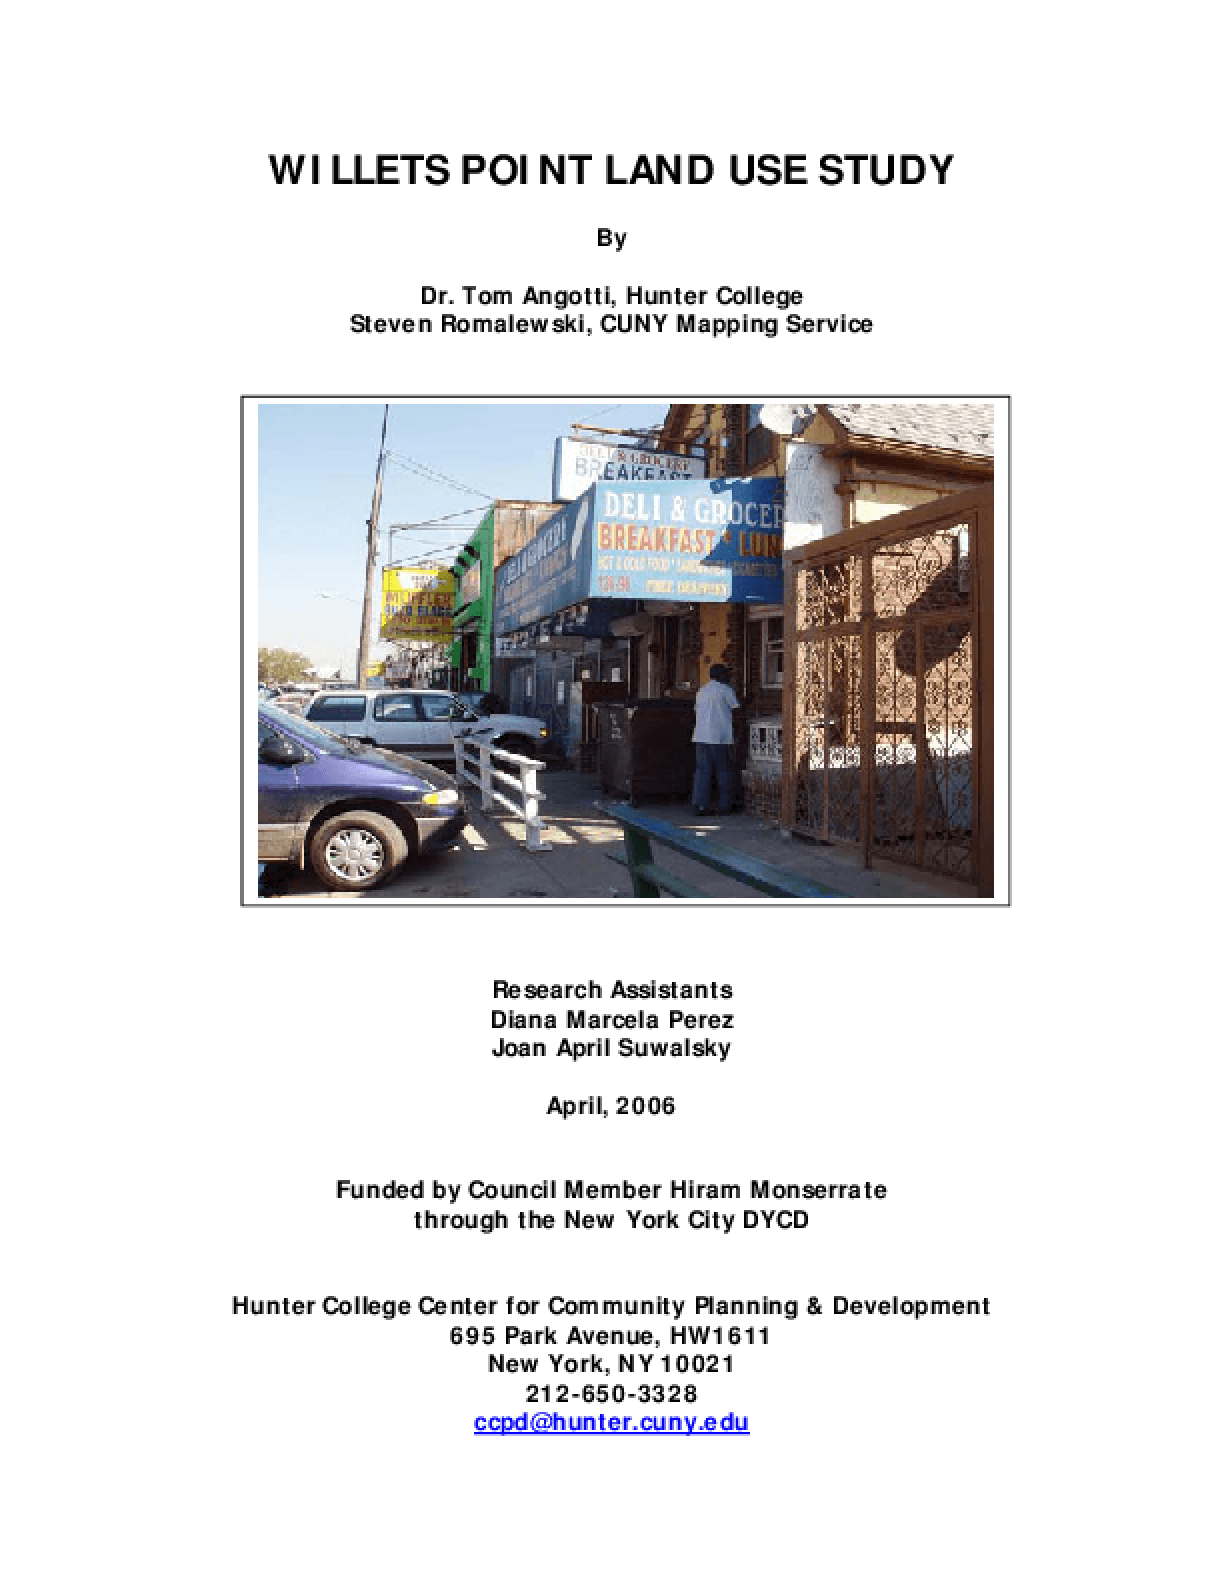 Willets Point Land Use Study